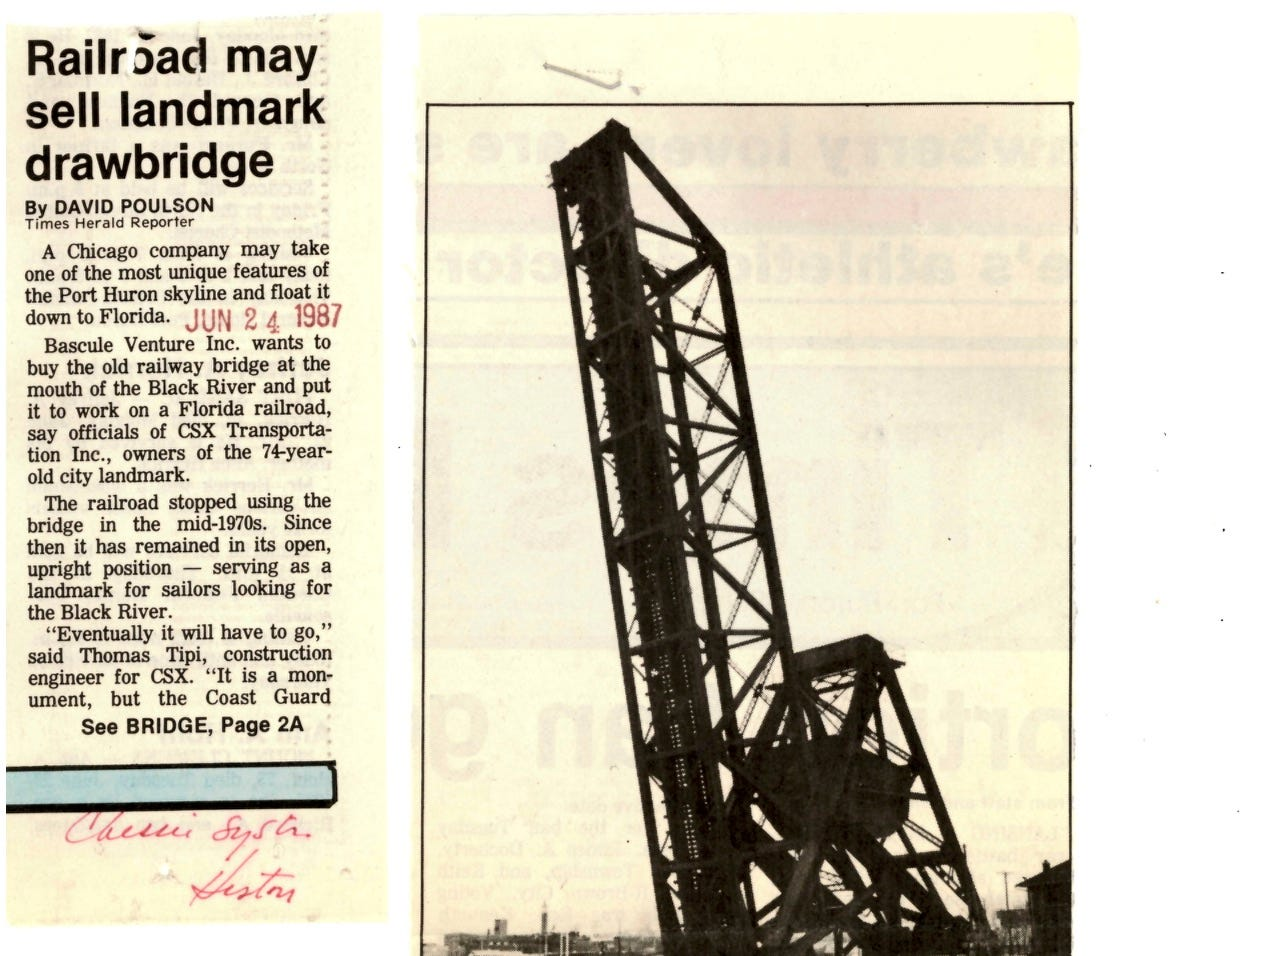 In a newspaper clipping dated June 24, 1987, a Chicago company is looking to purchase the railway draw bridge over the Black River and put it to work on a Florida railroad.